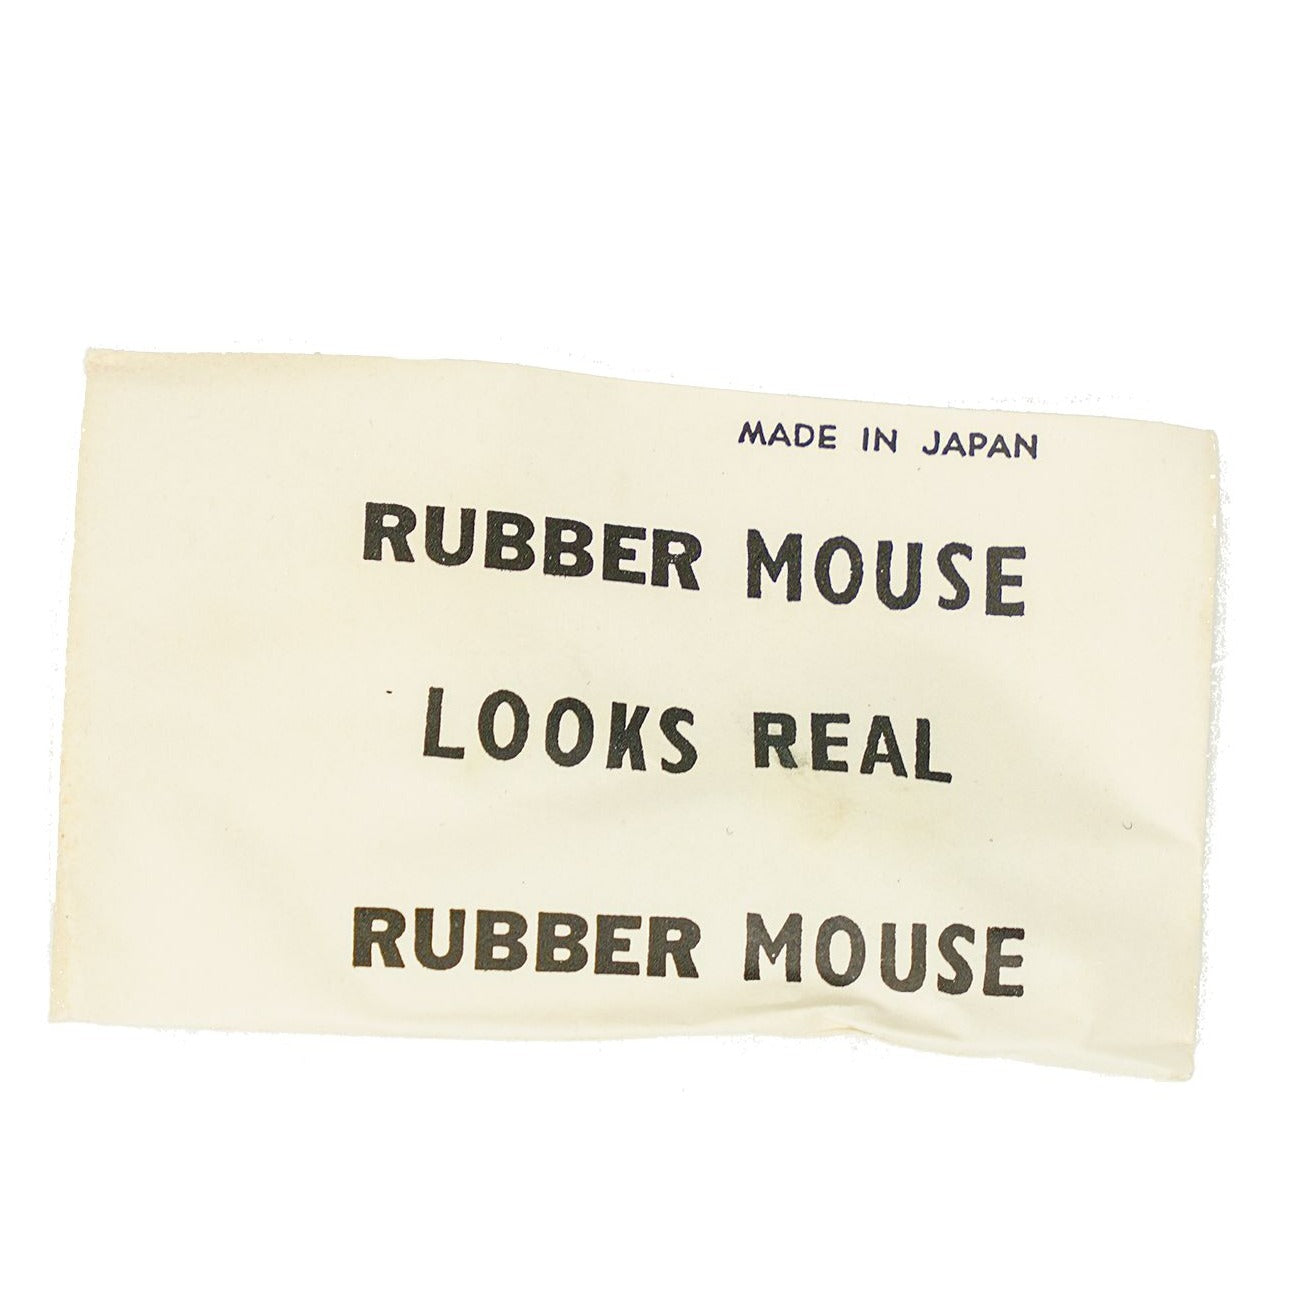 Rubber Mouse Looks Real Novelty from Japan, circa 1950s, N.O.S.